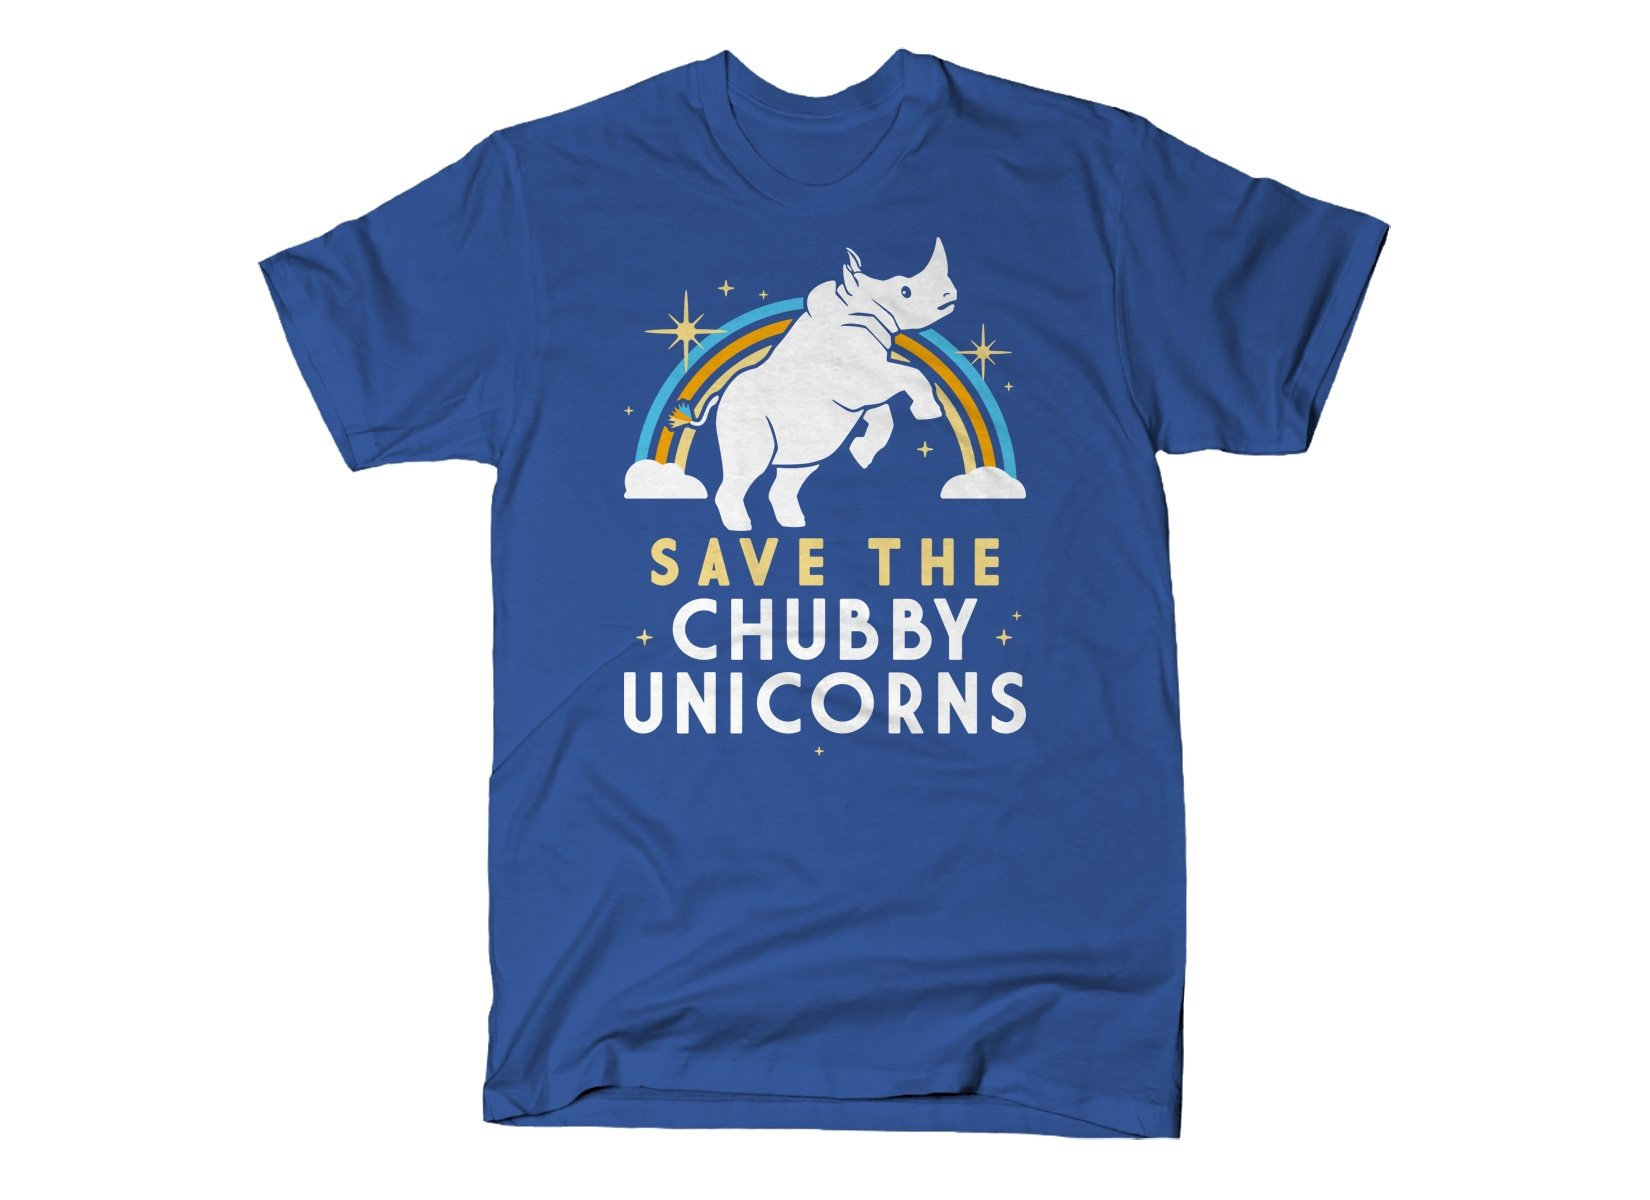 Save The Chubby Unicorns on Mens T-Shirt